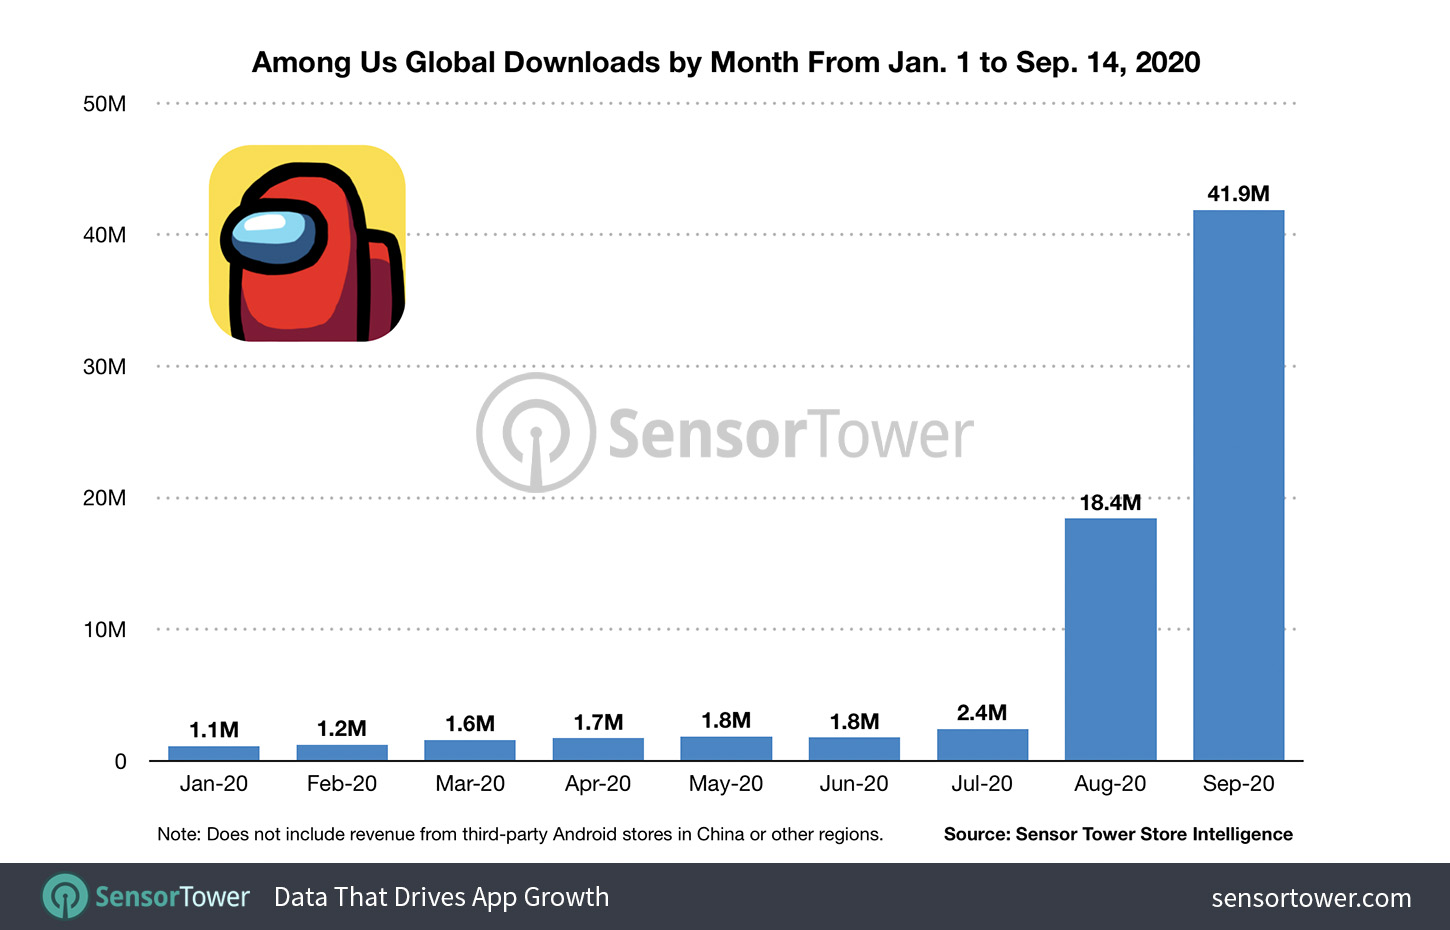 Among Us - Global Downloads by Month - SensorTower